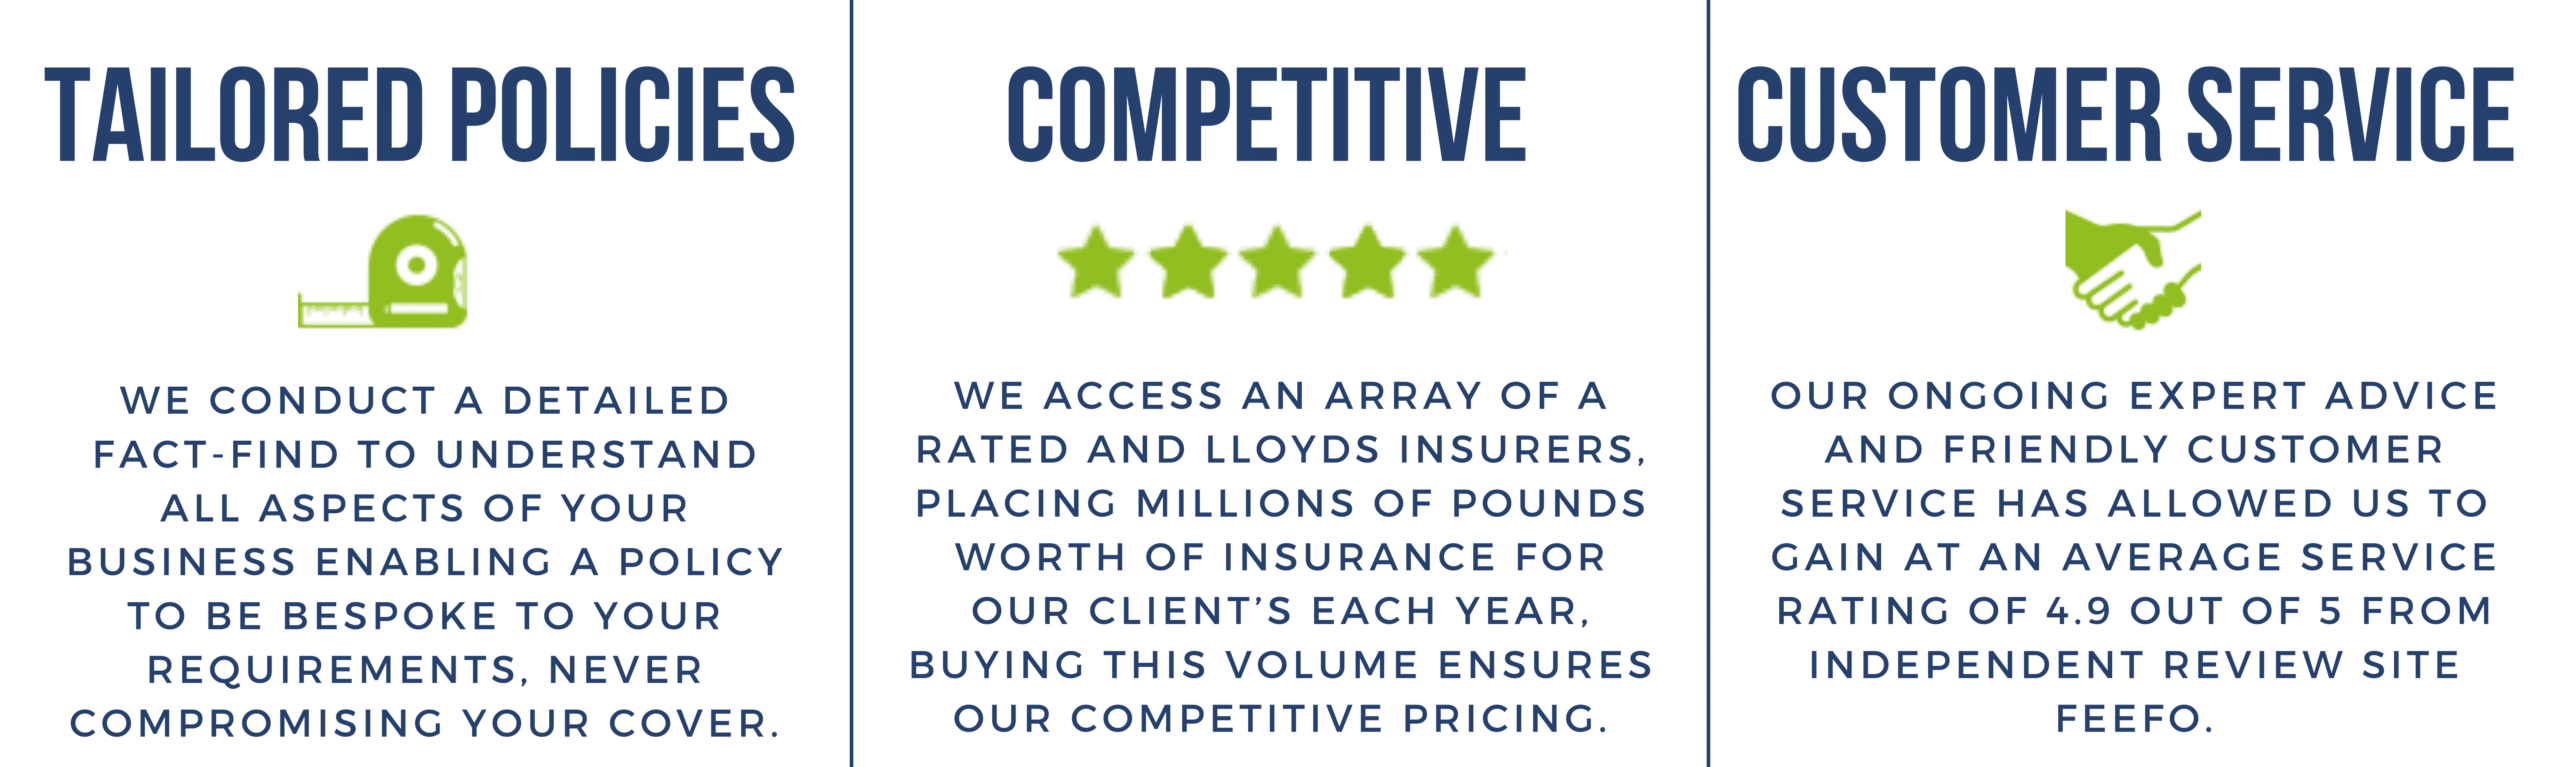 Why choose DPI Insurance - Tailored Policies, Competitive Prices and Customer Service